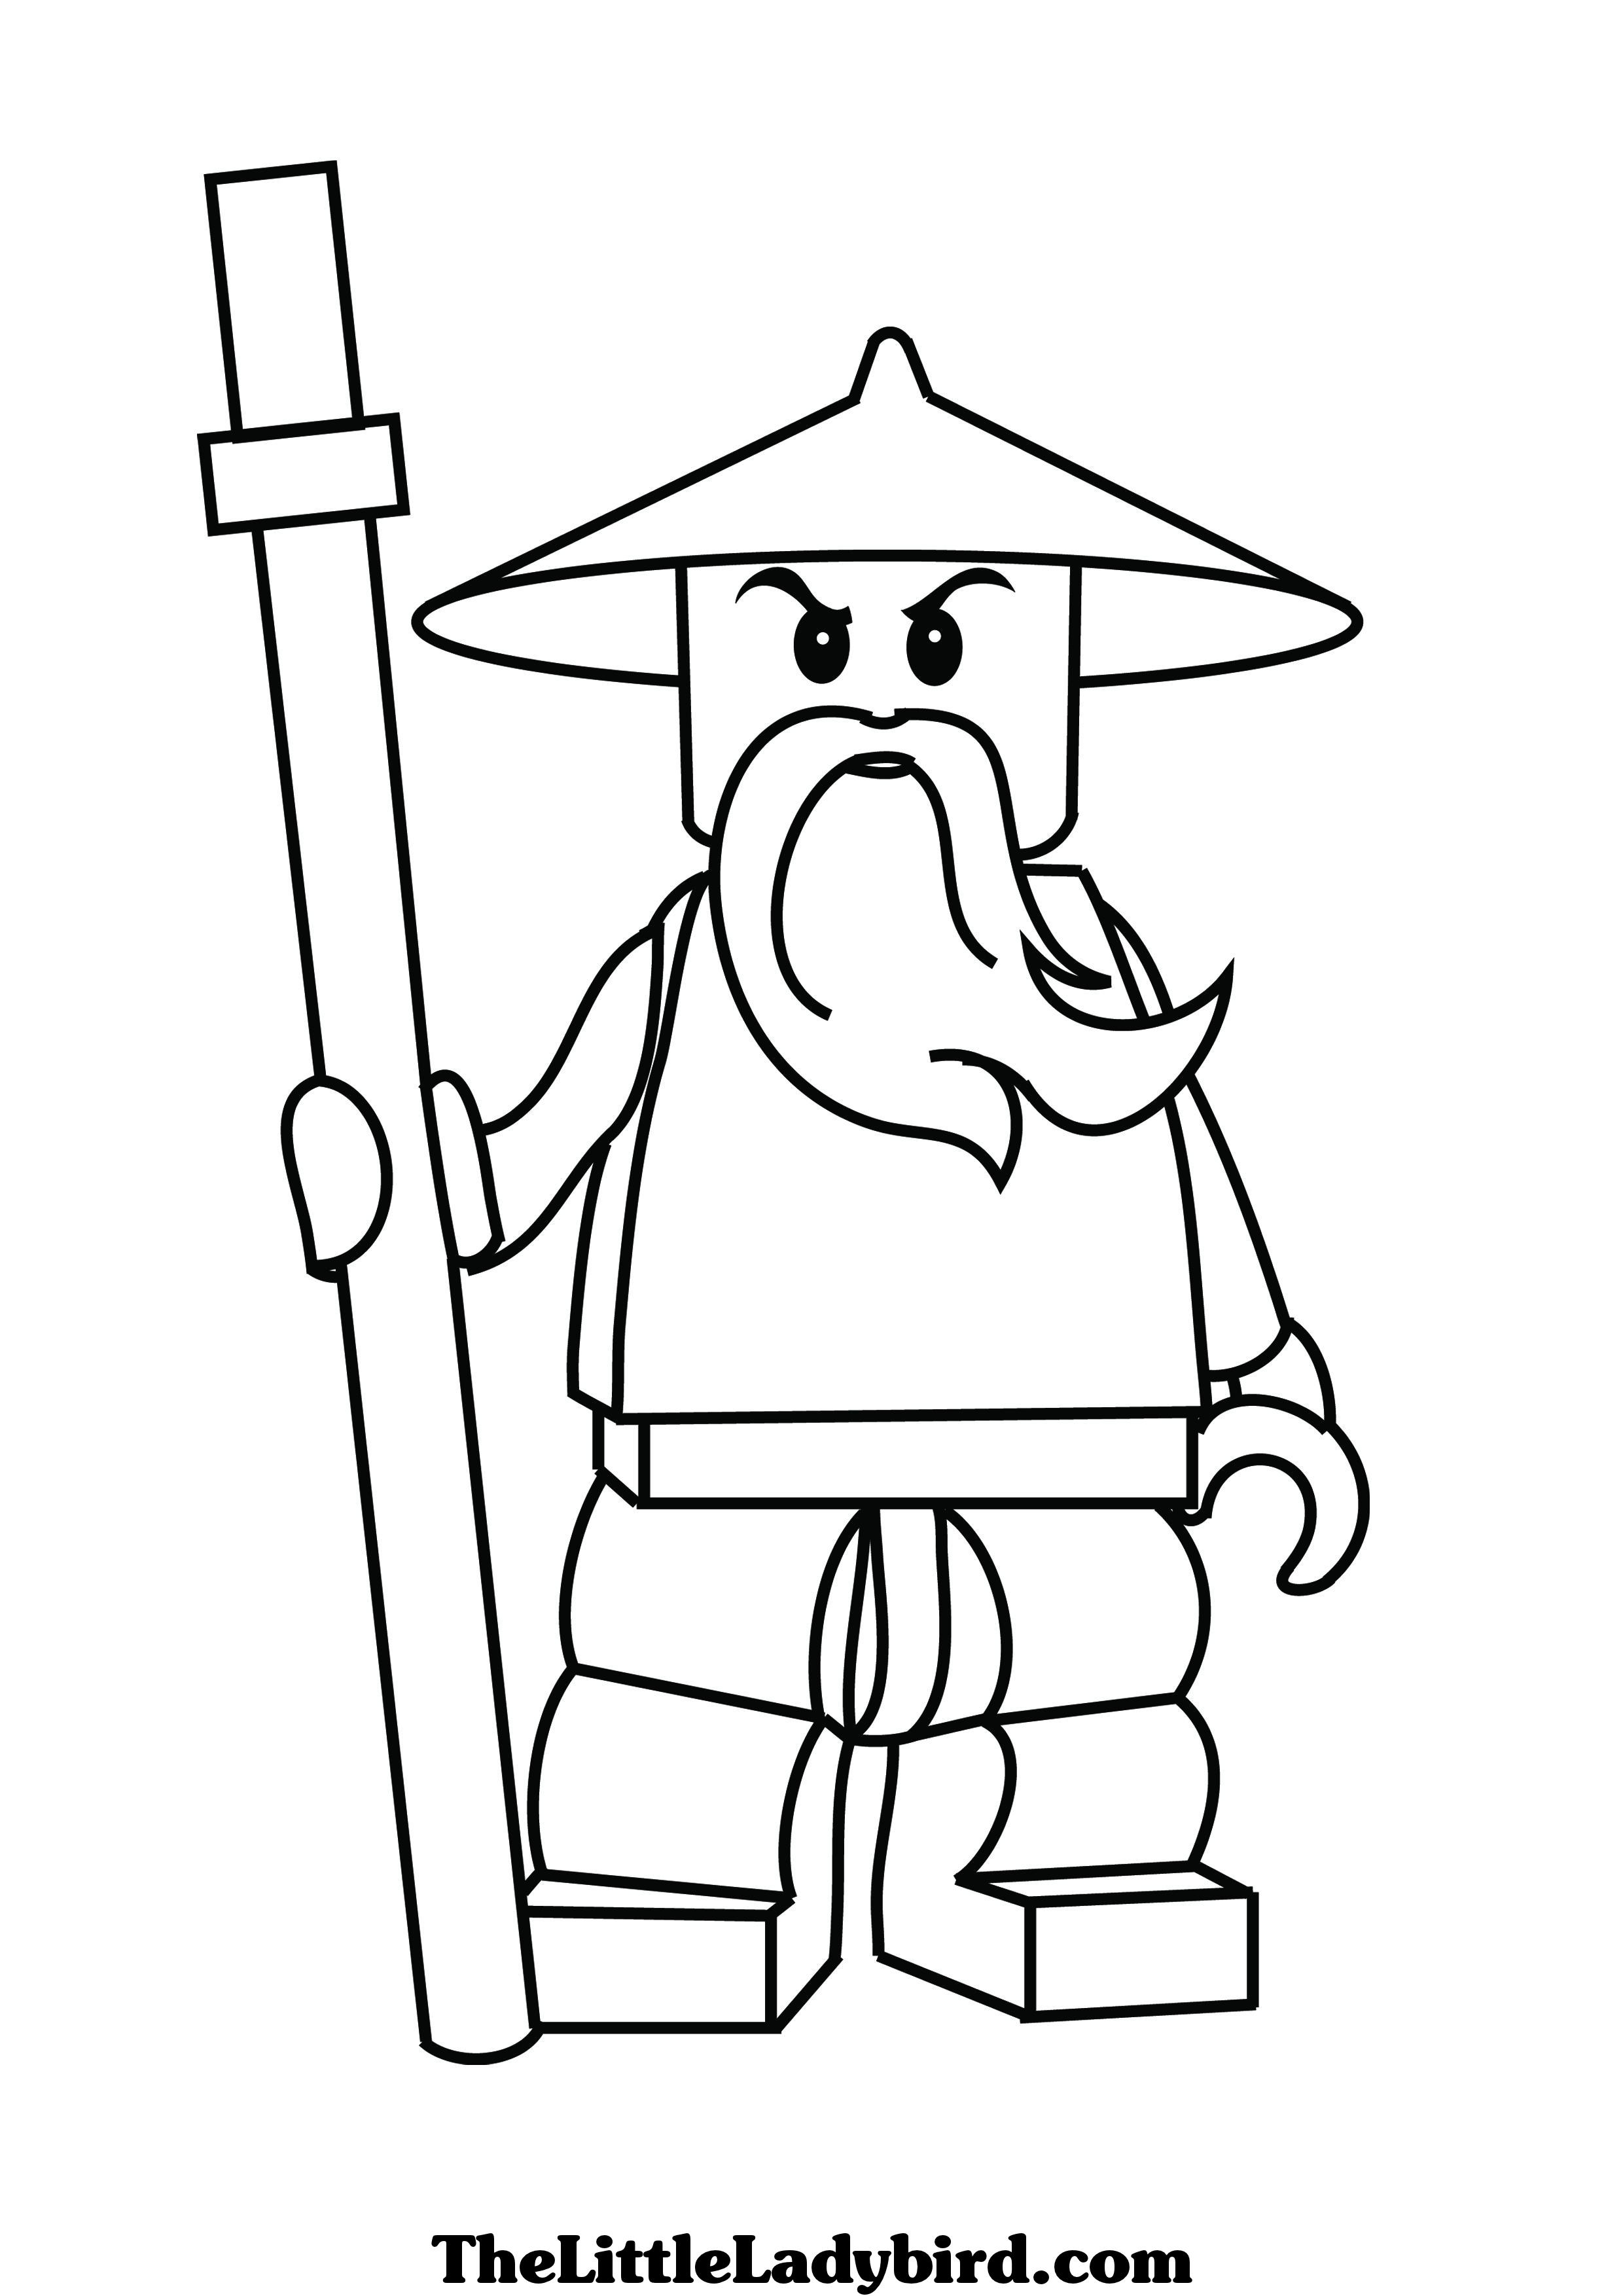 Coloring Pages Lego Ninjago : Free ninjago serpent coloring pages